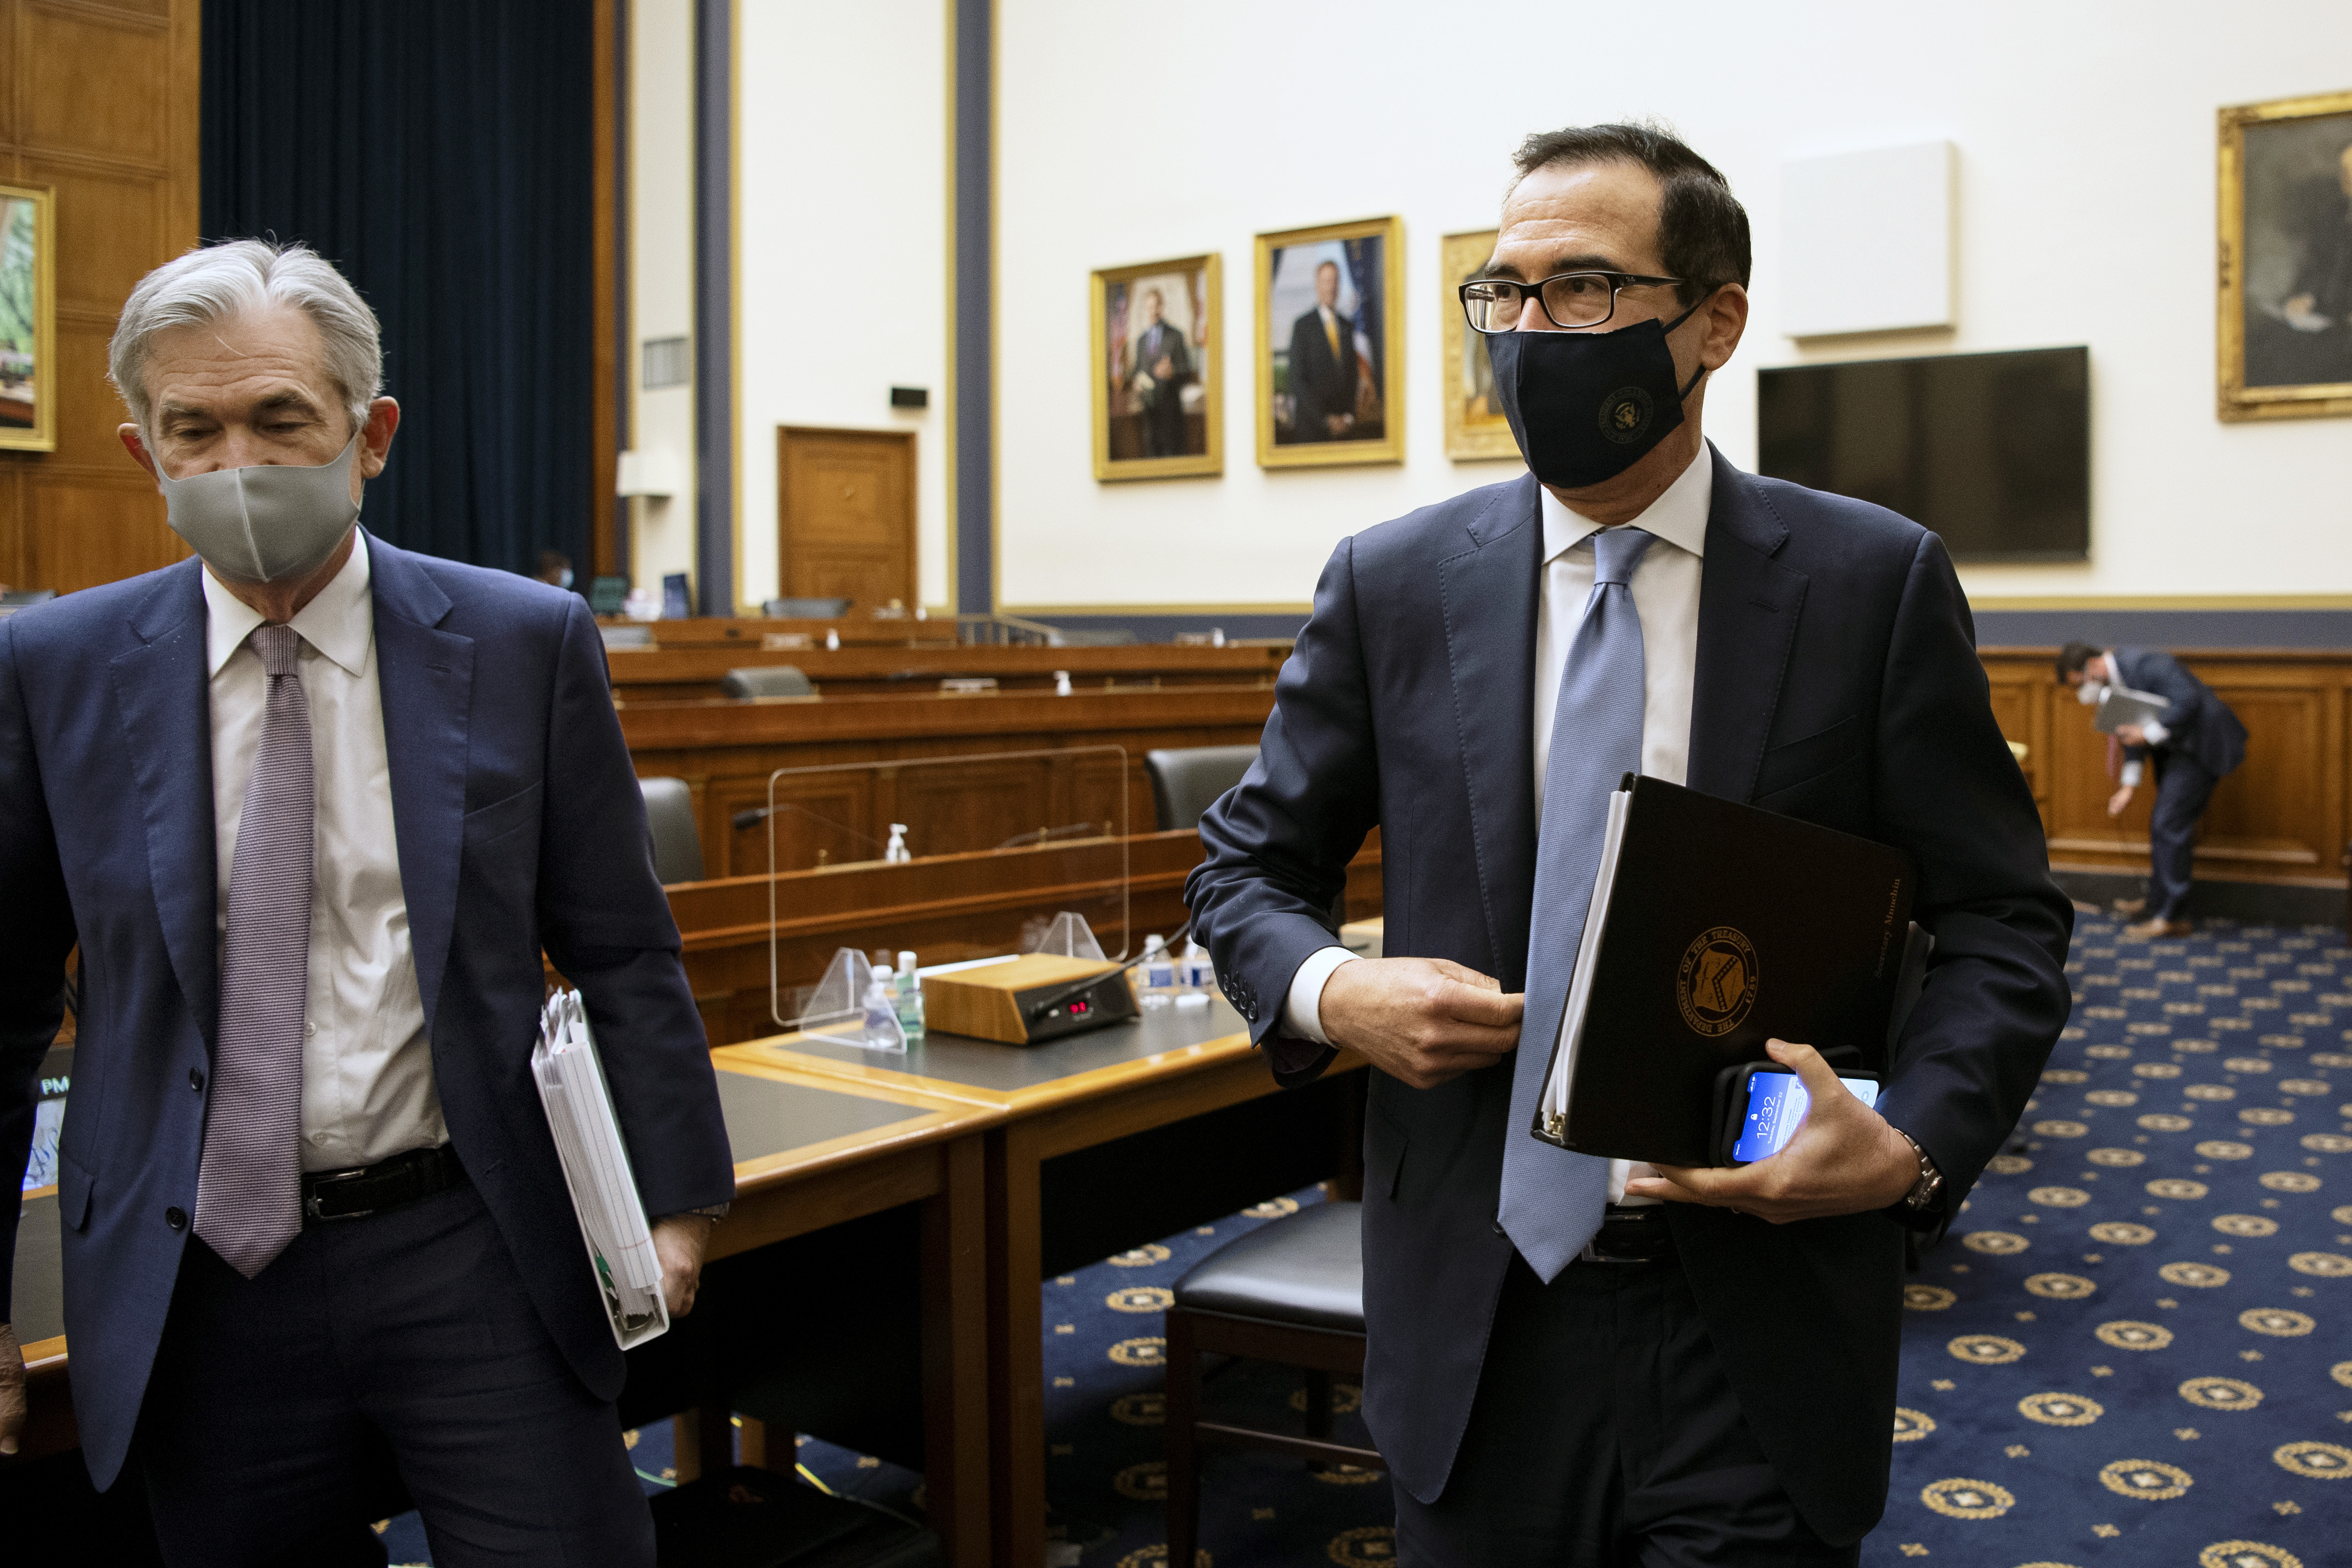 Federal Reserve Chair Jerome Powell, left, and Treasury Secretary Steve Mnuchin leave after a House Financial Services Committee hearing about the government's emergency aid to the economy in response to the coronavirus on Capitol Hill in Washington on Tuesday, Sept. 22, 2020. (Caroline Brehman/Pool via AP)